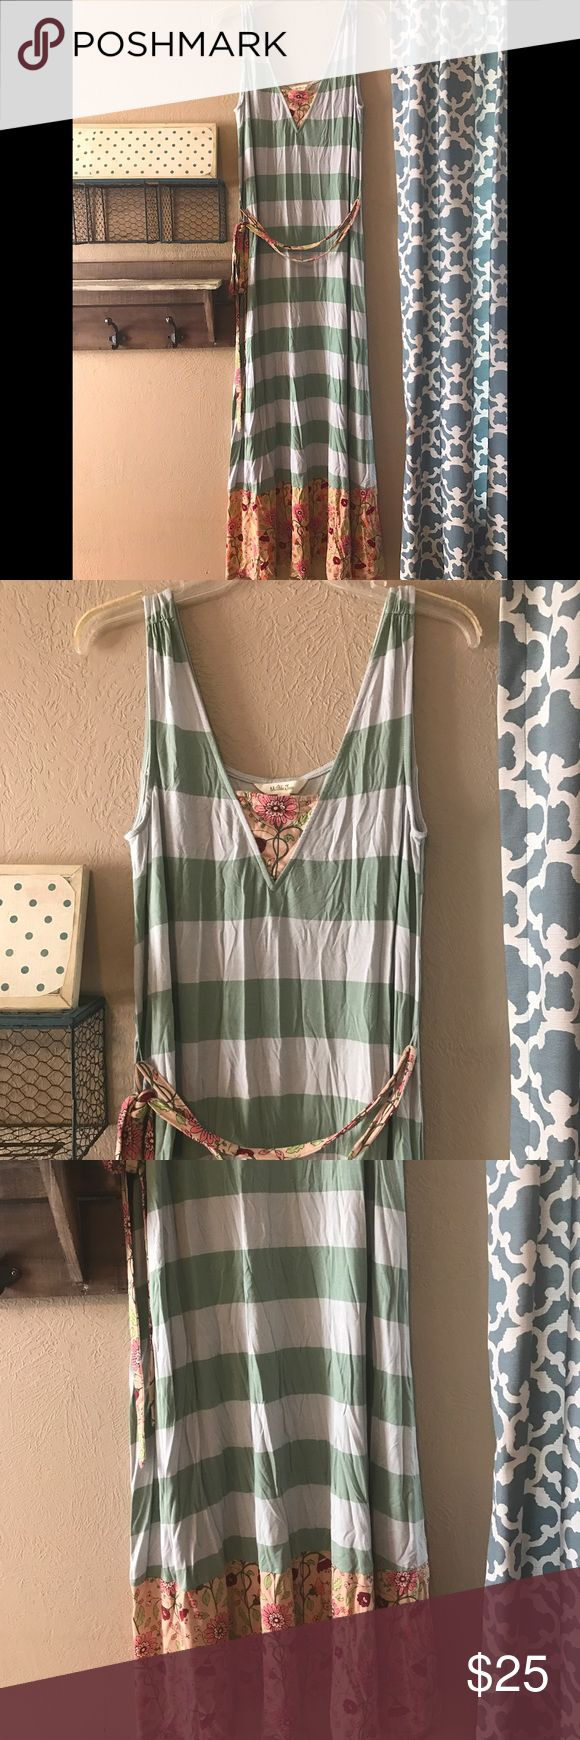 """Matilda Jane Seaside Afternoon Maxi Dress Matilda Jane Happy and Free Seaside Afternoon Maxi Dress Sz Medium - Worn Once- Excellent Condition ~ Super soft striped knit maxi sundress with floral hem and inset at neckline. Wrap around waist ties. Measures 54"""" in length. Chest flat across is 17"""". Matilda Jane Dresses Maxi"""